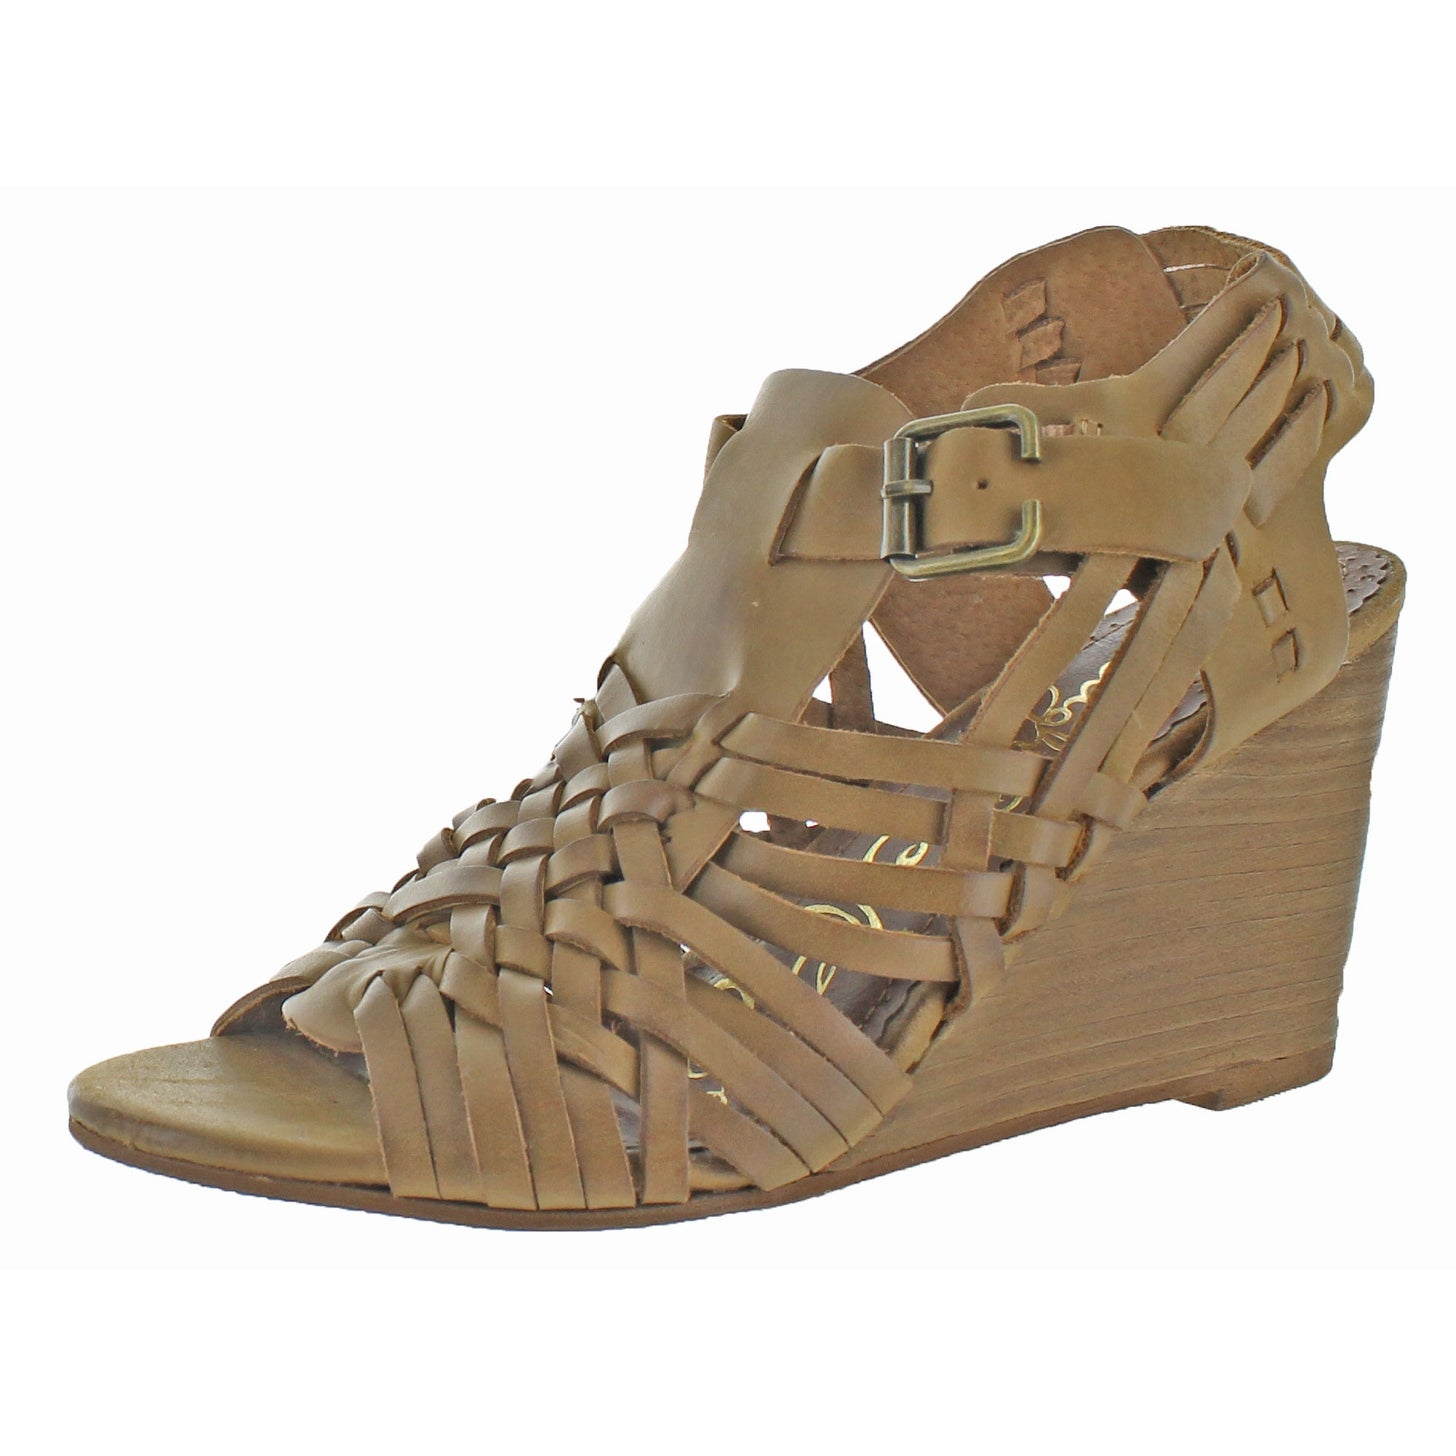 Naughty Monkey Dually Noted Women's Wedge Sandals